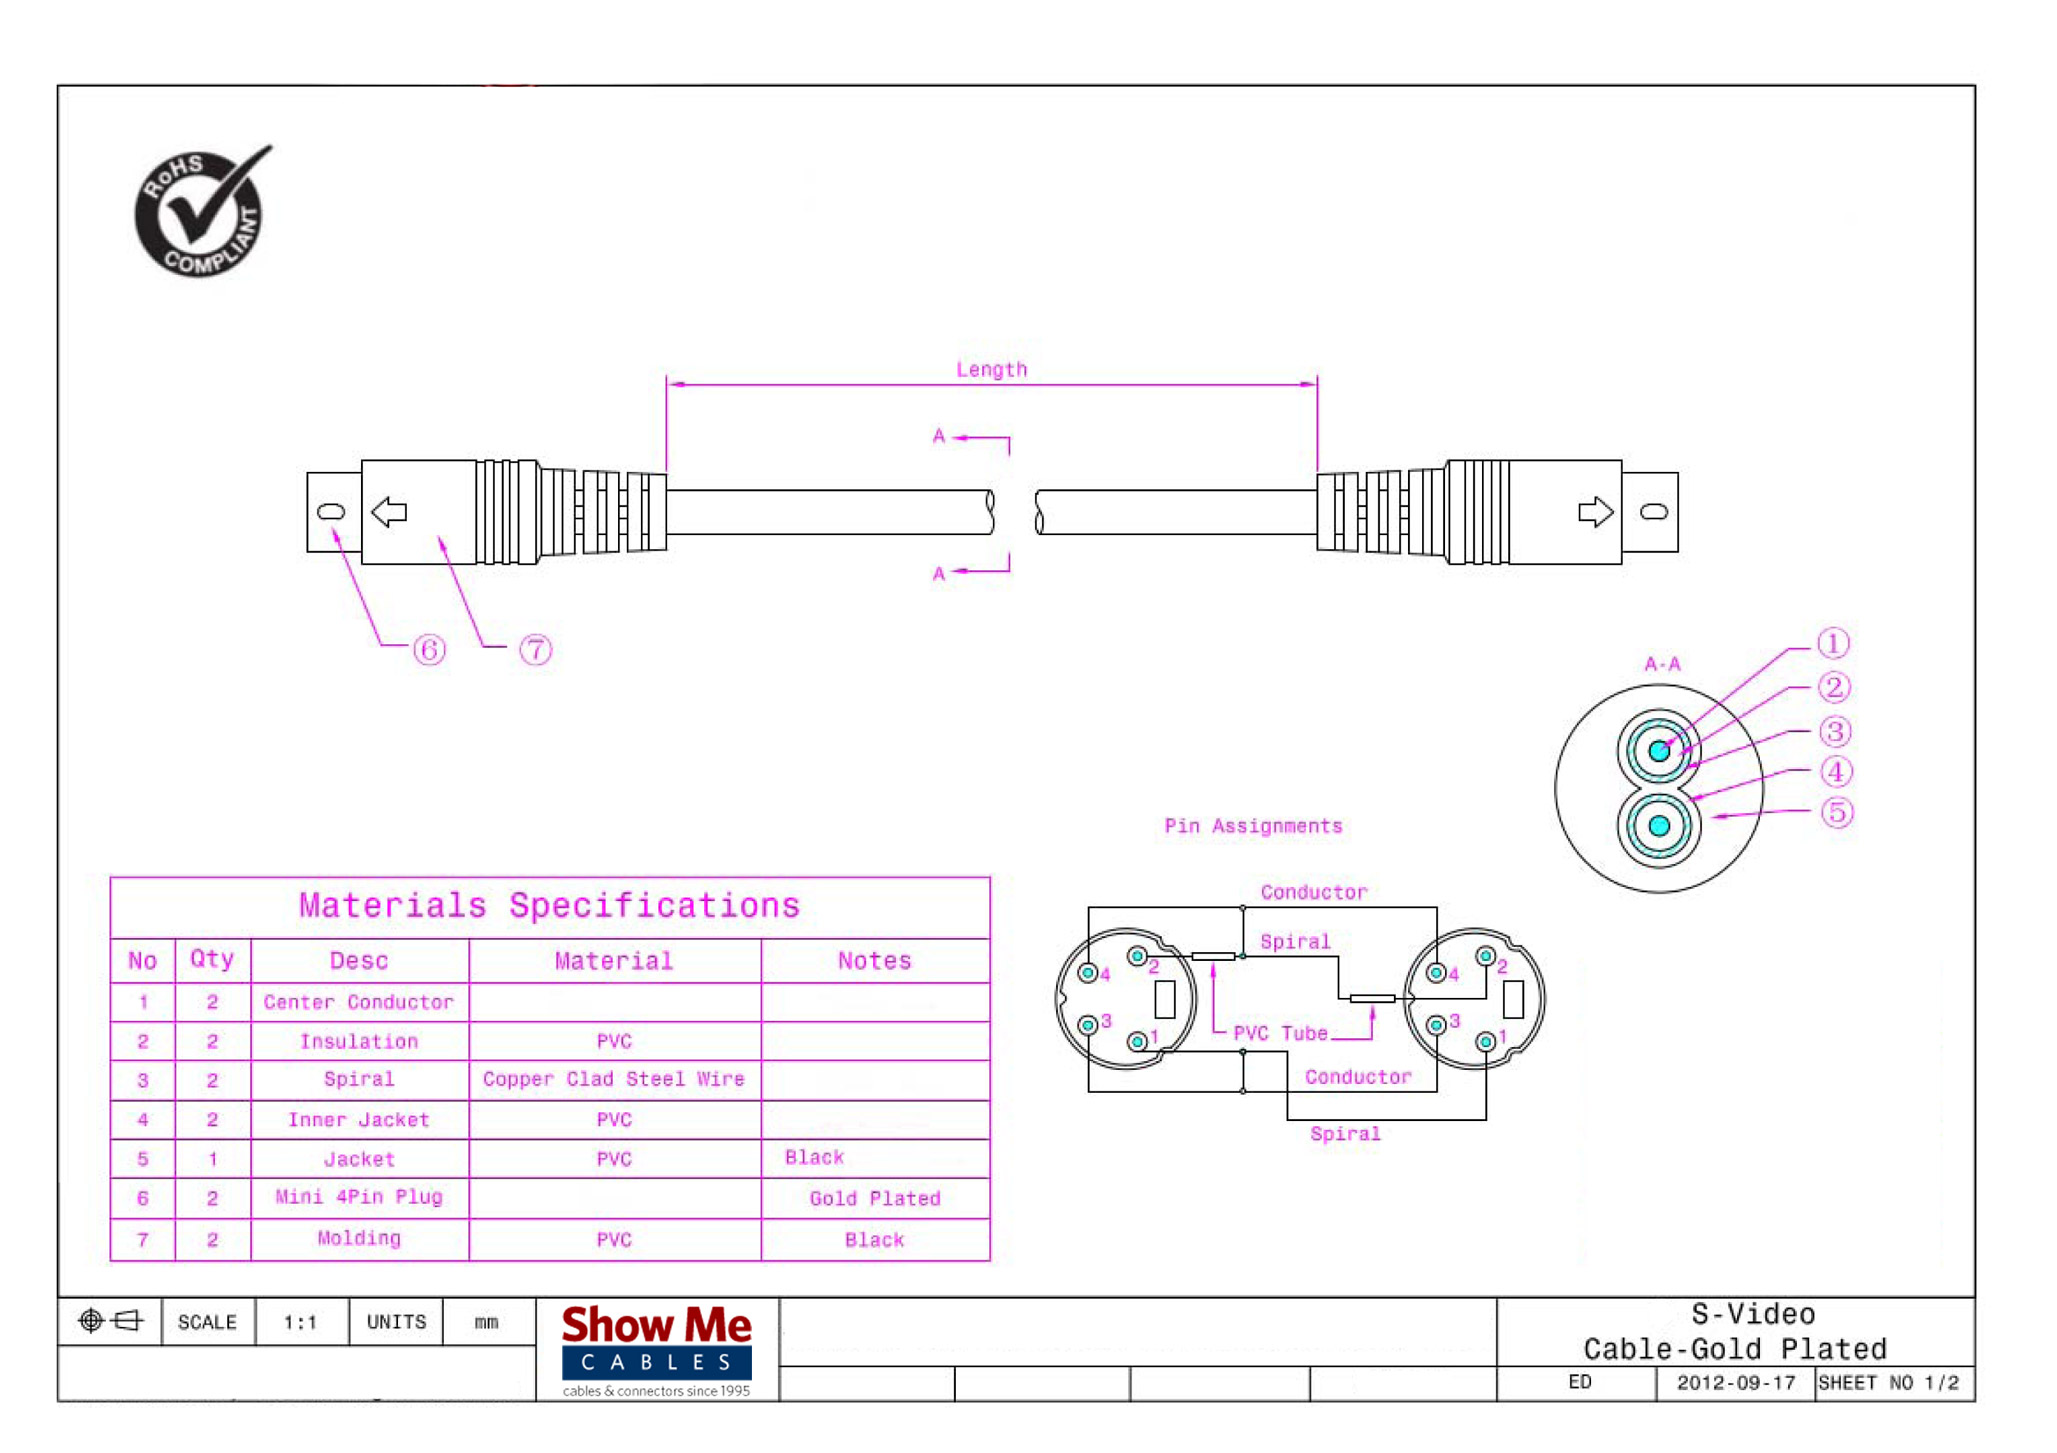 Db37 Cable Wiring Diagram Auto Electrical 7 Wire Scamp 6 Pin Trailer Connector